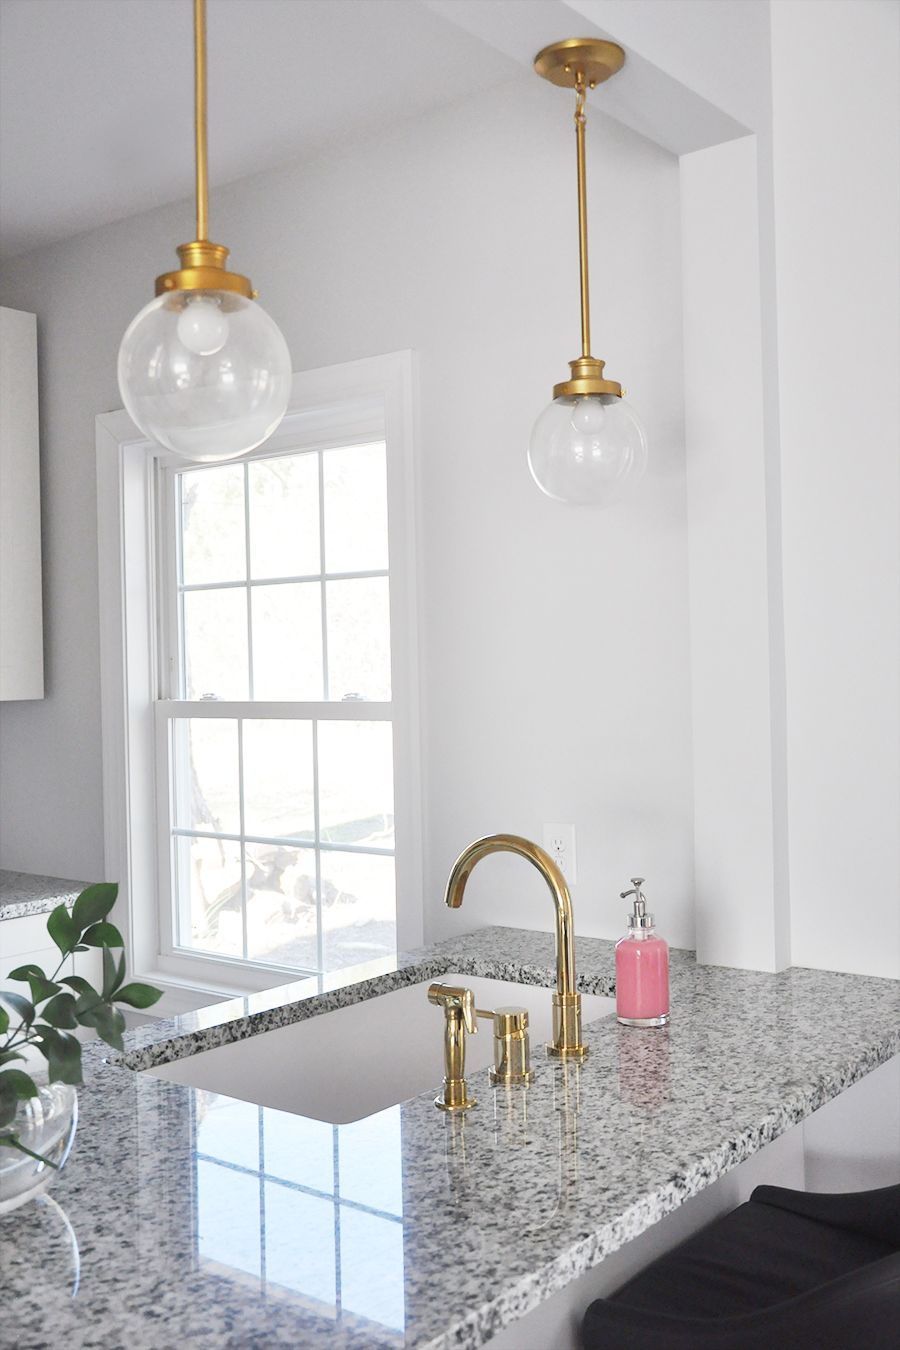 Making the case for white undermount kitchen sinks renovating your kitchen heres a quick run down of the pros and cons of white undermount kitchen